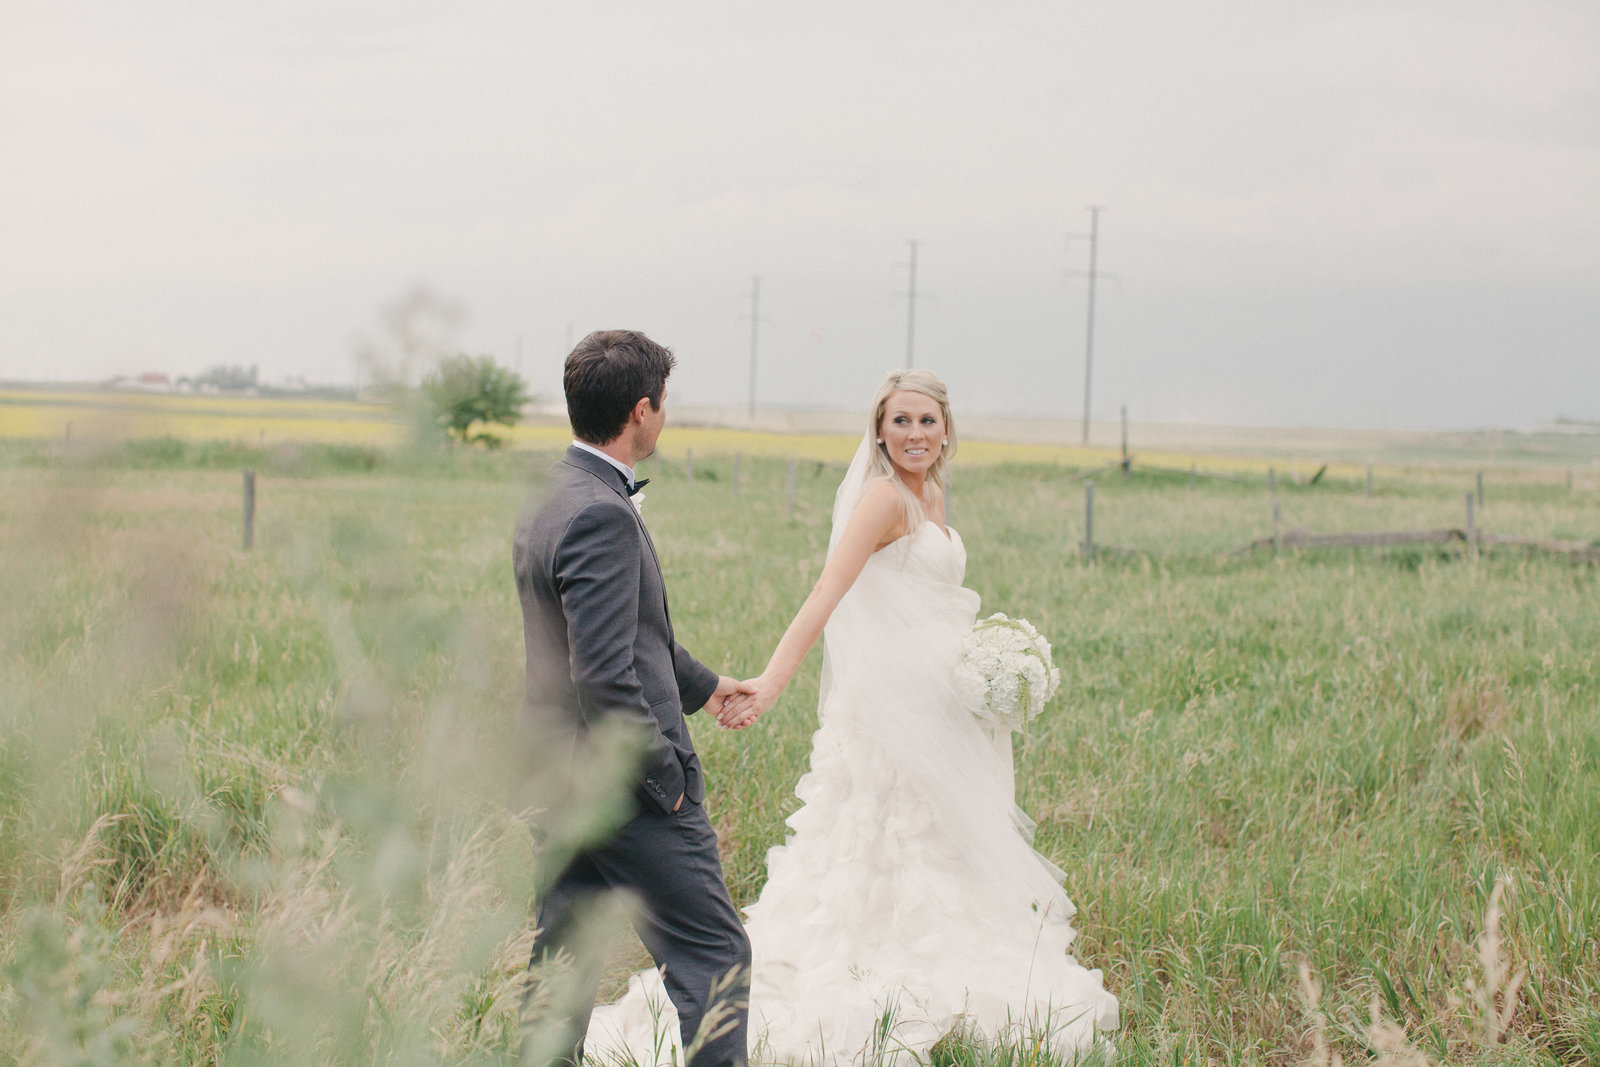 Bride and Groom walk through field